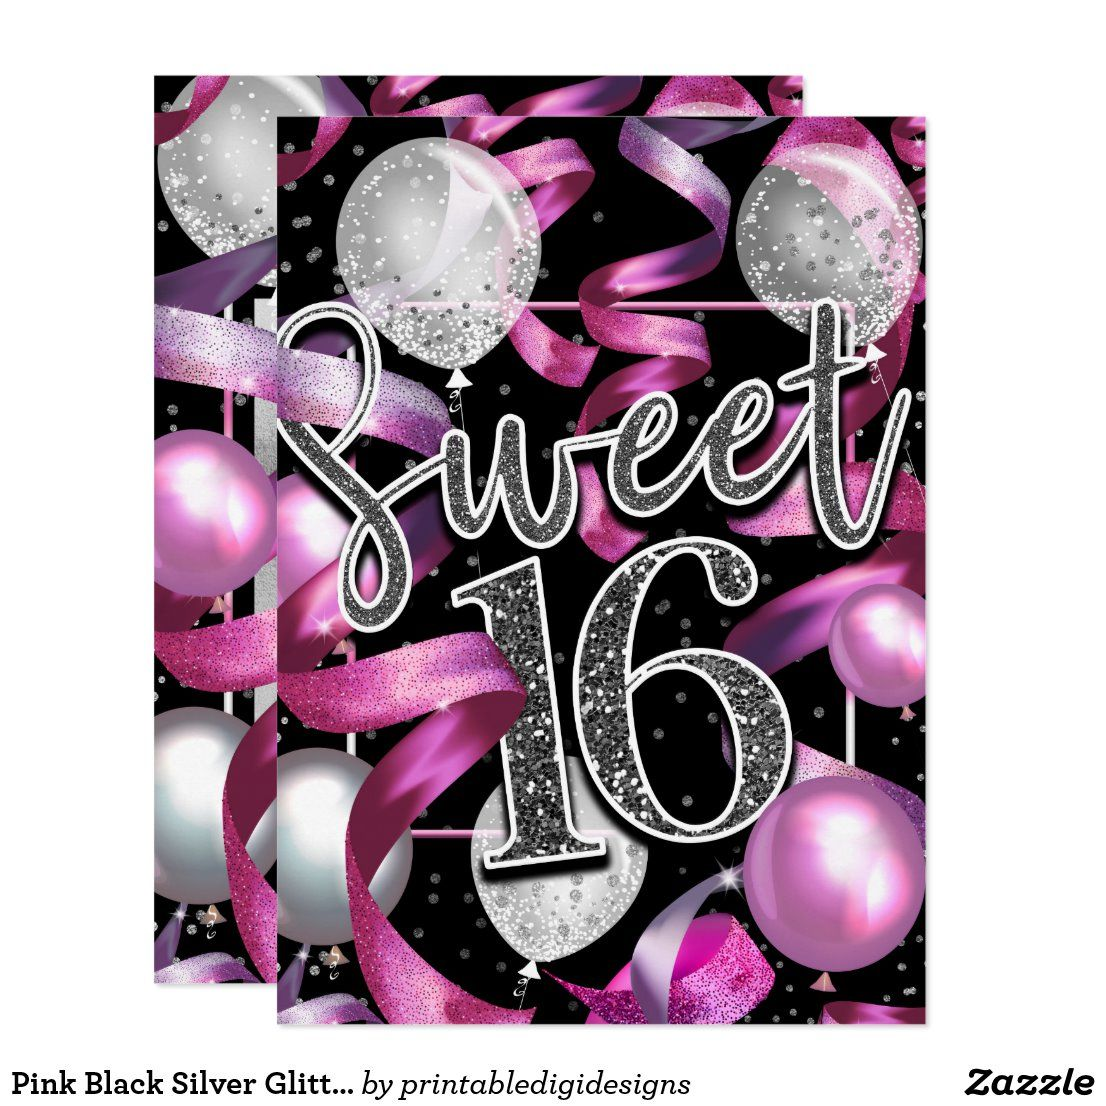 Pink Black Silver Glitter Sweet 16 Birthday Party